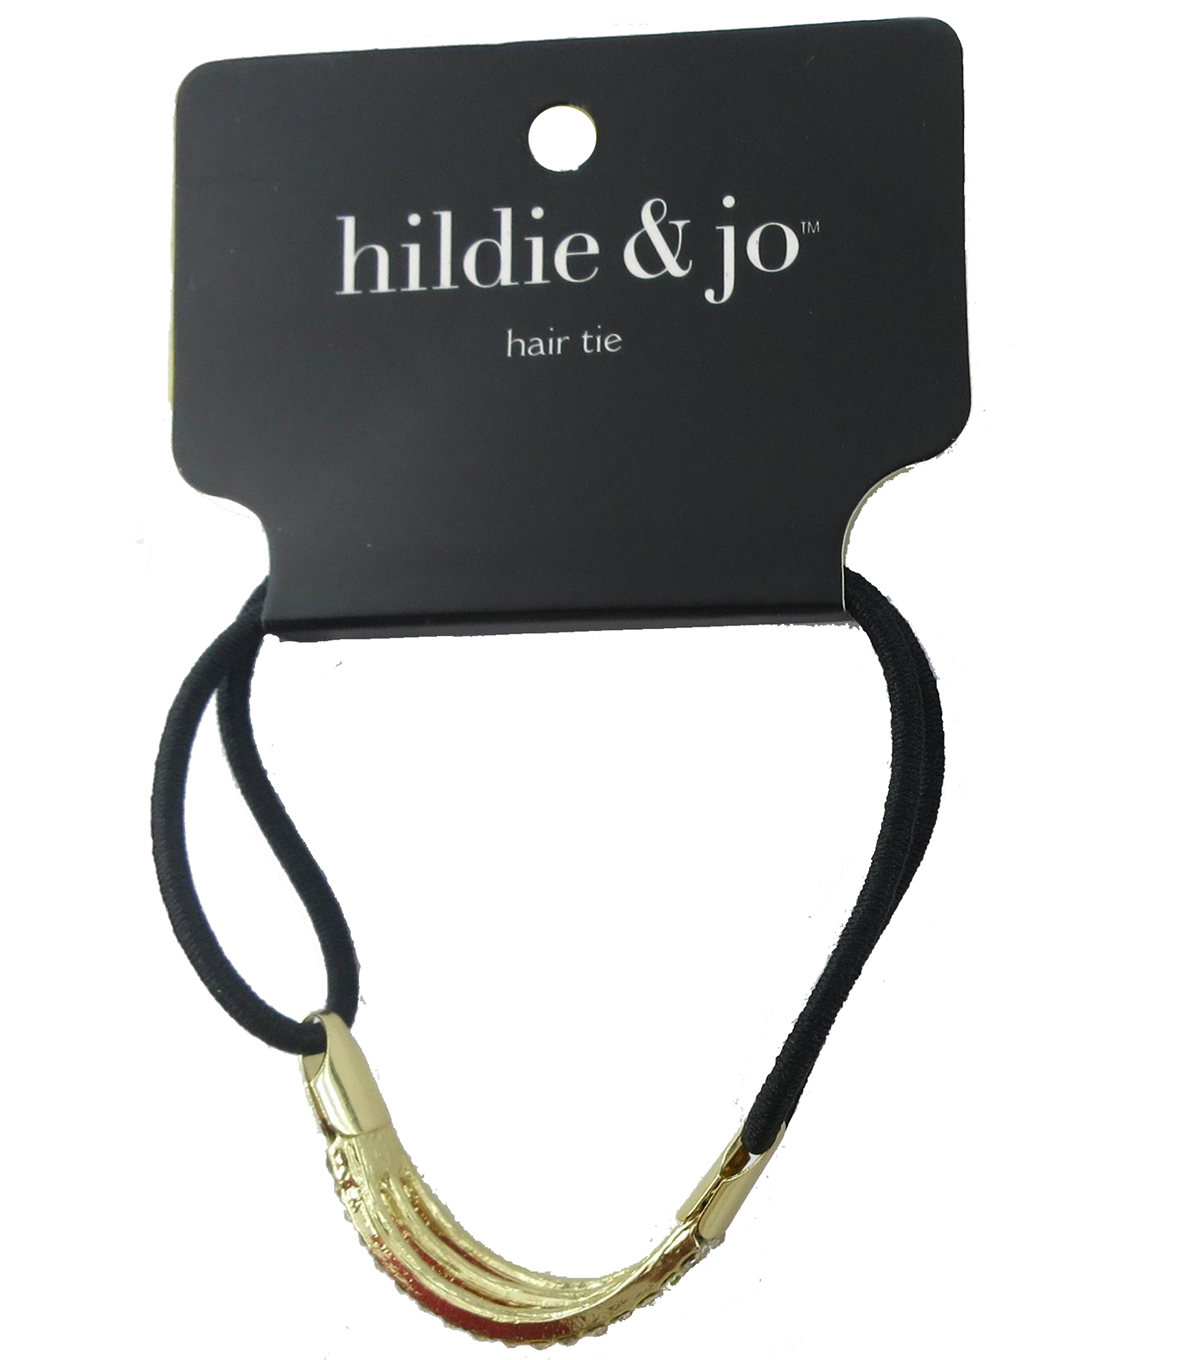 hildie & jo Black Hair Tie-Gold Charm with Clear Crystals